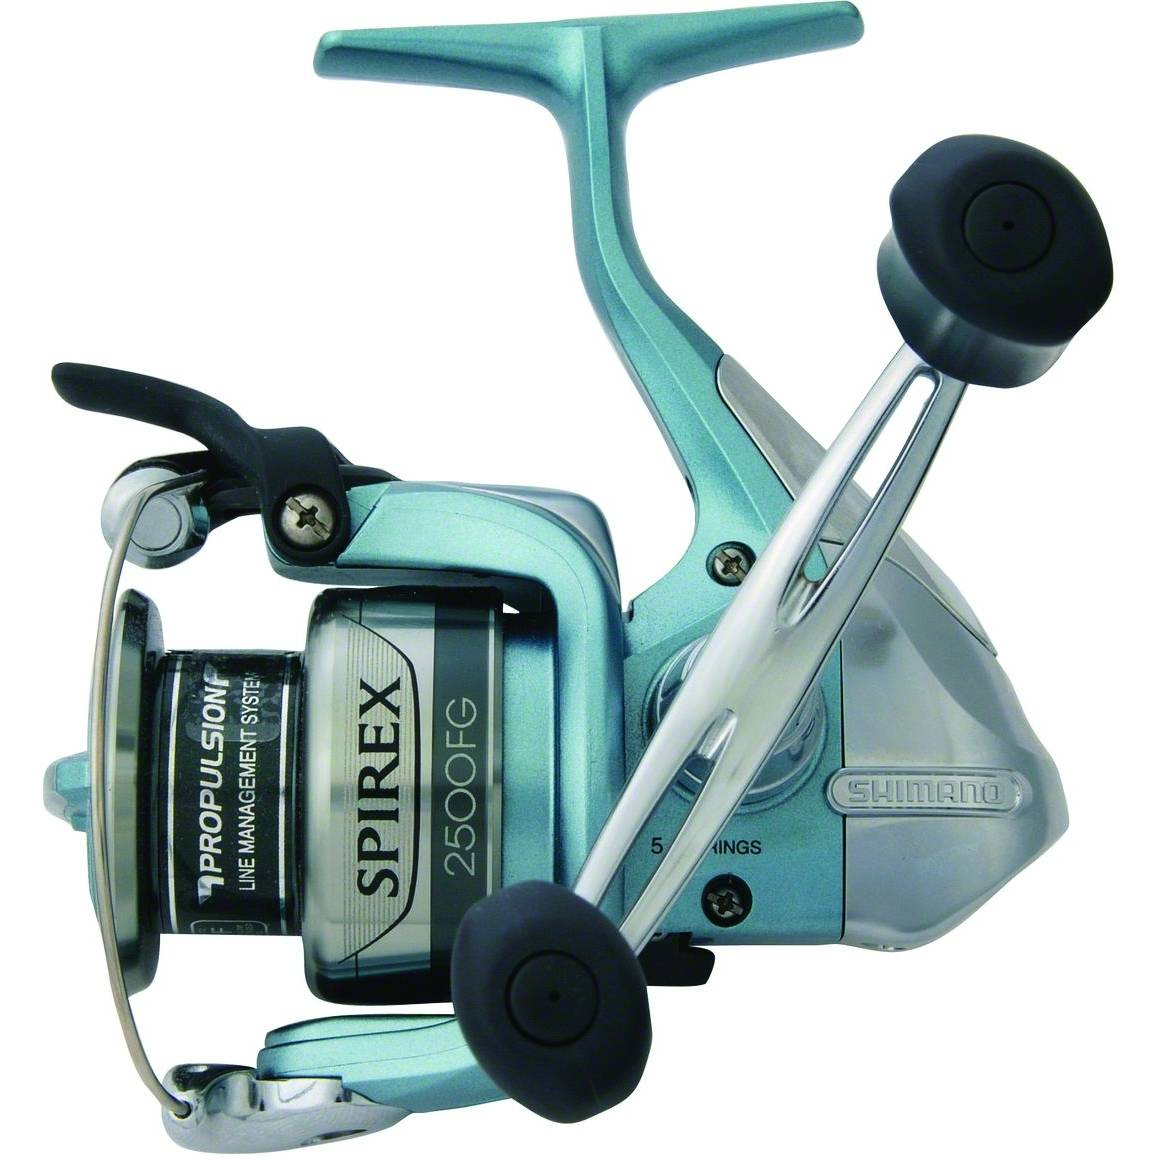 Shimano Spirex FG Reel; This is part of the Spinning collection offered from Fishin' My Best Life - fishinmybestlife.com